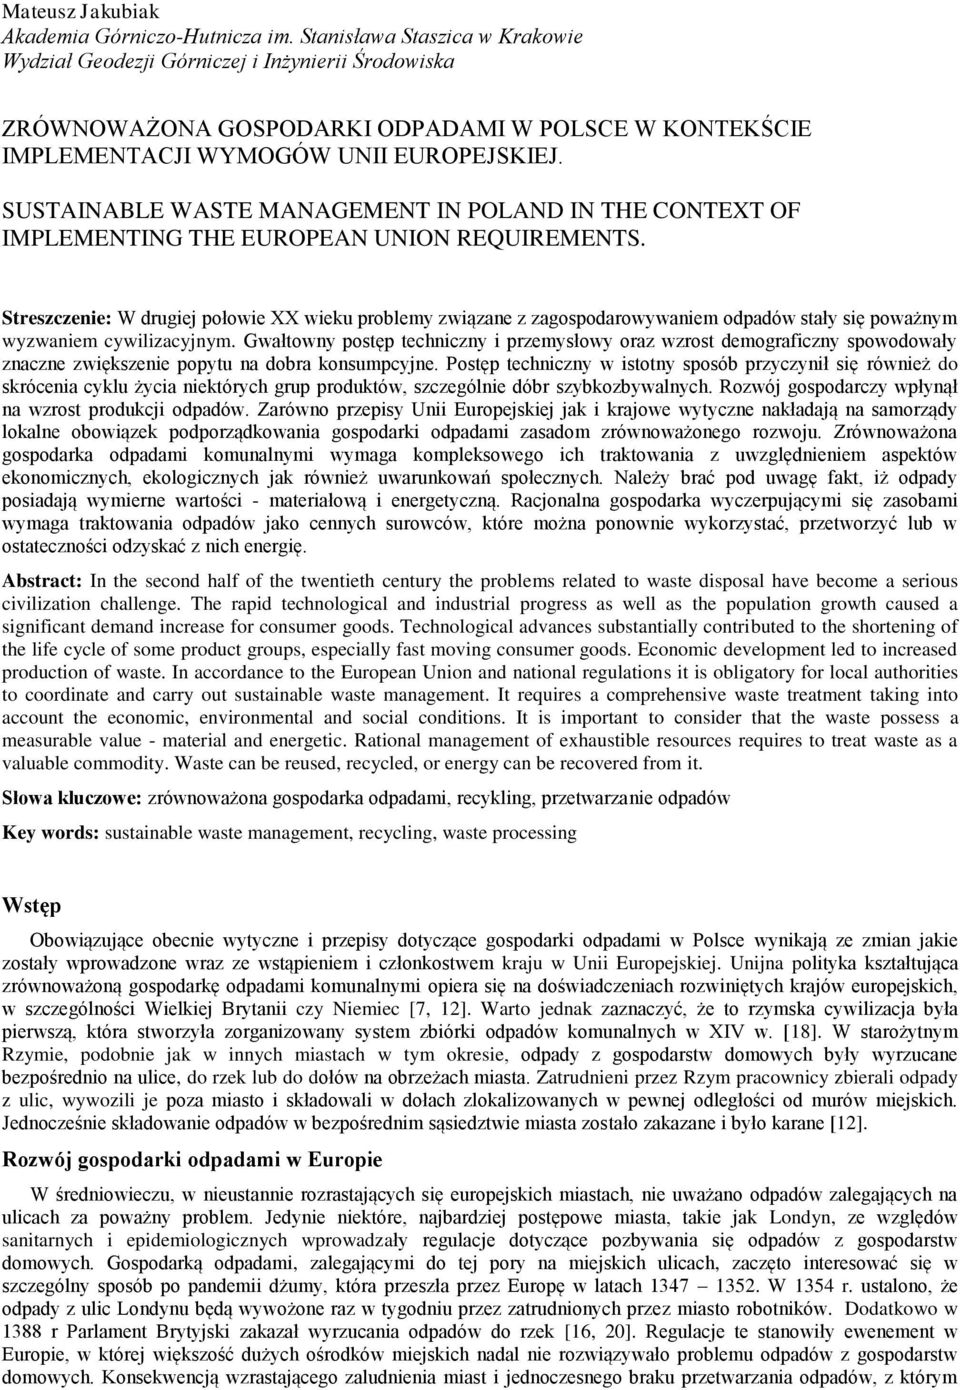 SUSTAINABLE WASTE MANAGEMENT IN POLAND IN THE CONTEXT OF IMPLEMENTING THE EUROPEAN UNION REQUIREMENTS.